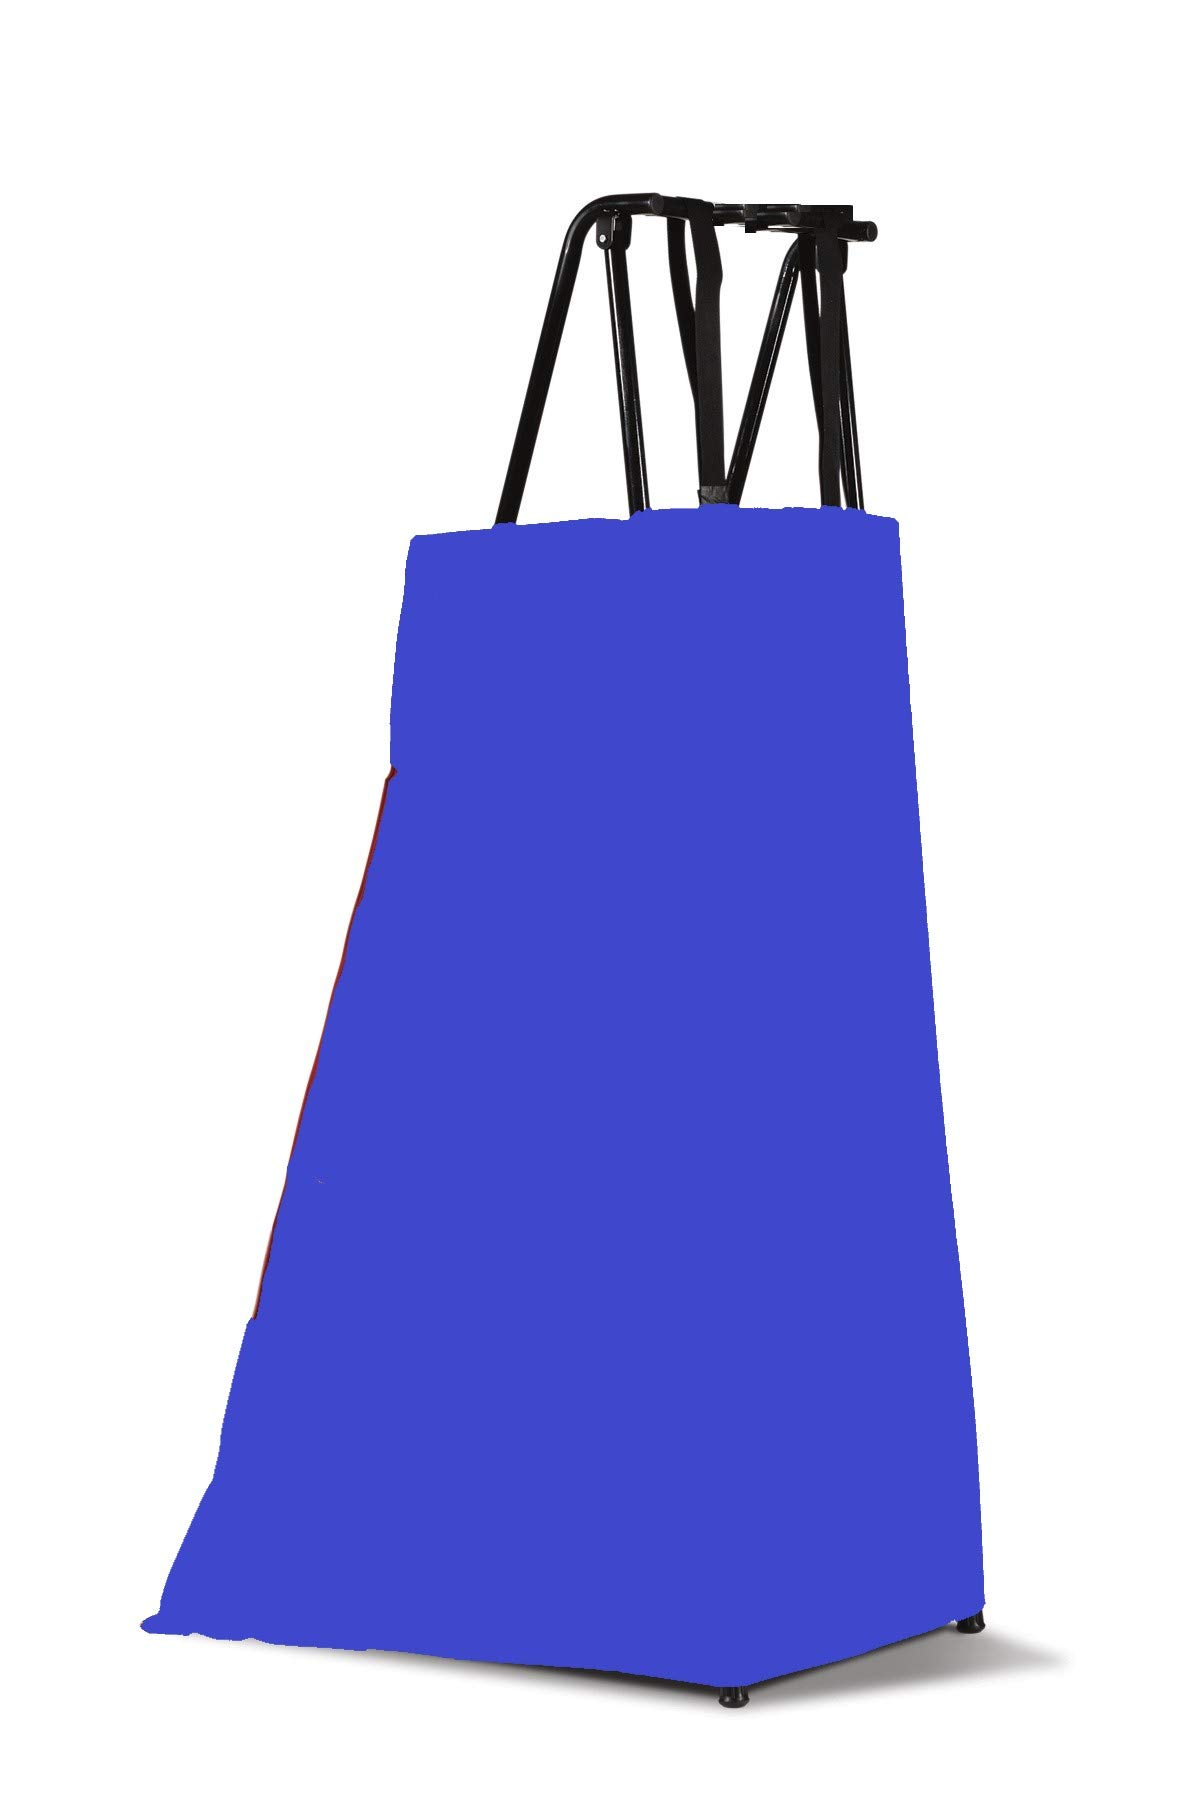 Eastern Atlantic New - Volleyball Referee Stand Protective Padding (Royal Blue)